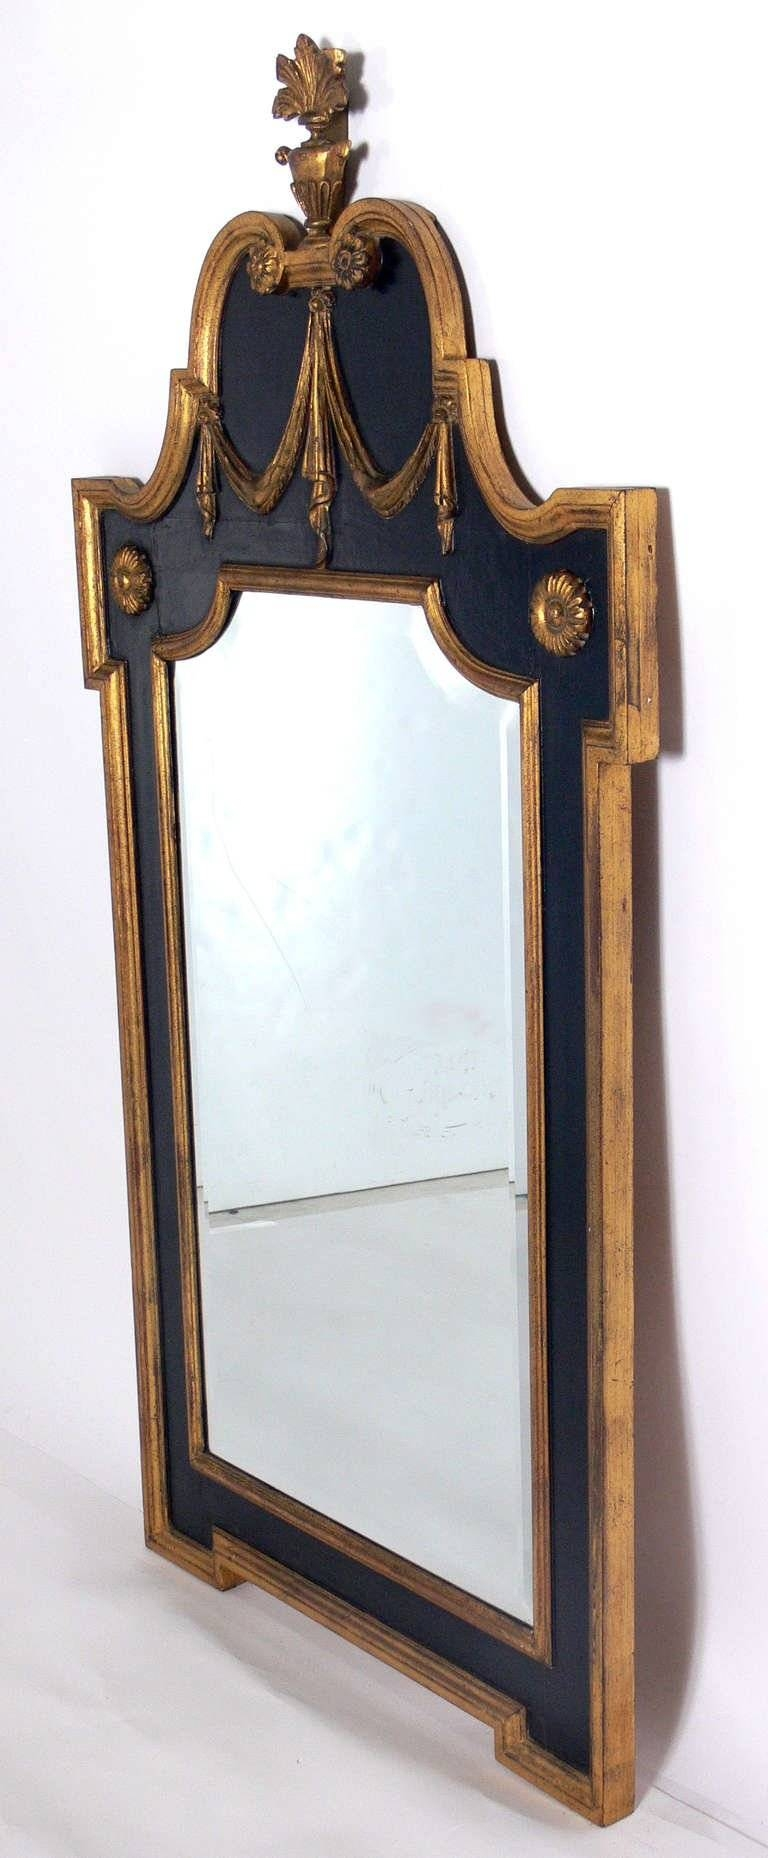 Neoclassical Gold And Black Mirror For Sale At 1Stdibs within Antique Black Mirrors (Image 10 of 15)